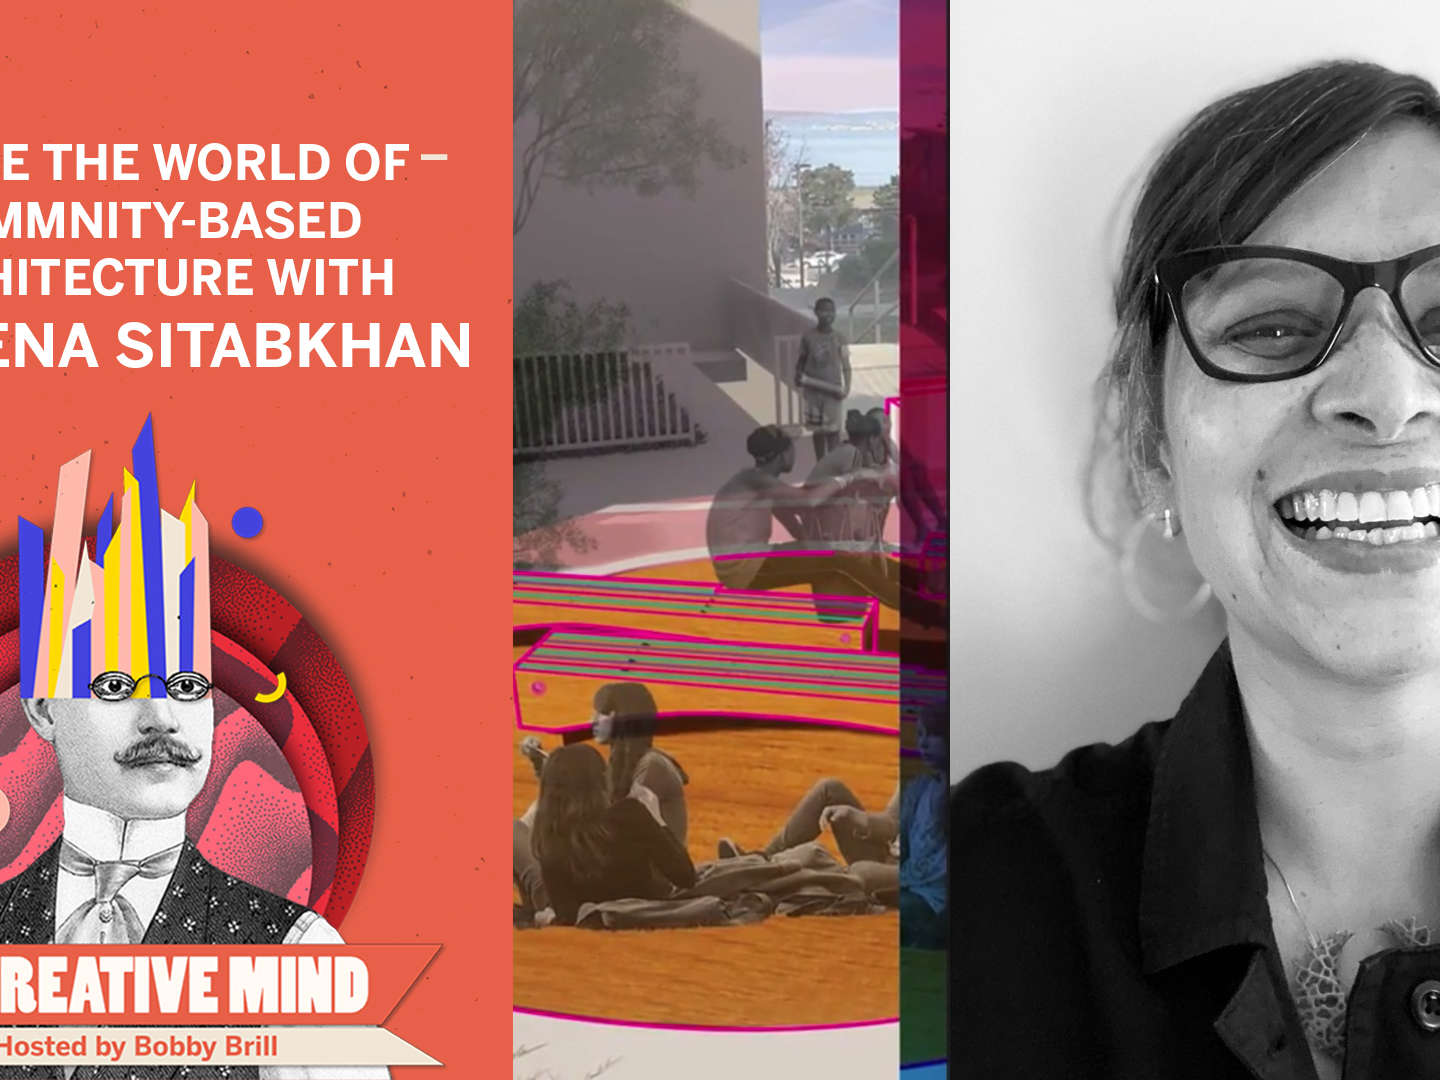 Sameena Sitabkhan - Creative Mind Podcast Episode 14